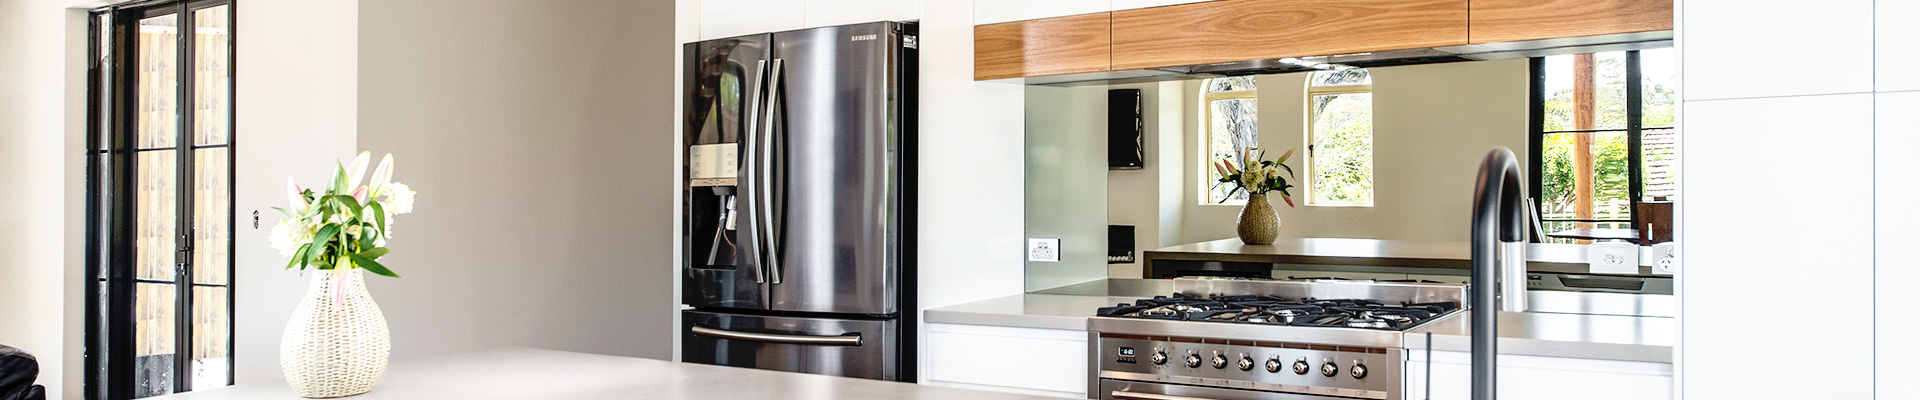 Interest free wardrobes finance kitchen connection for A kitchen connection